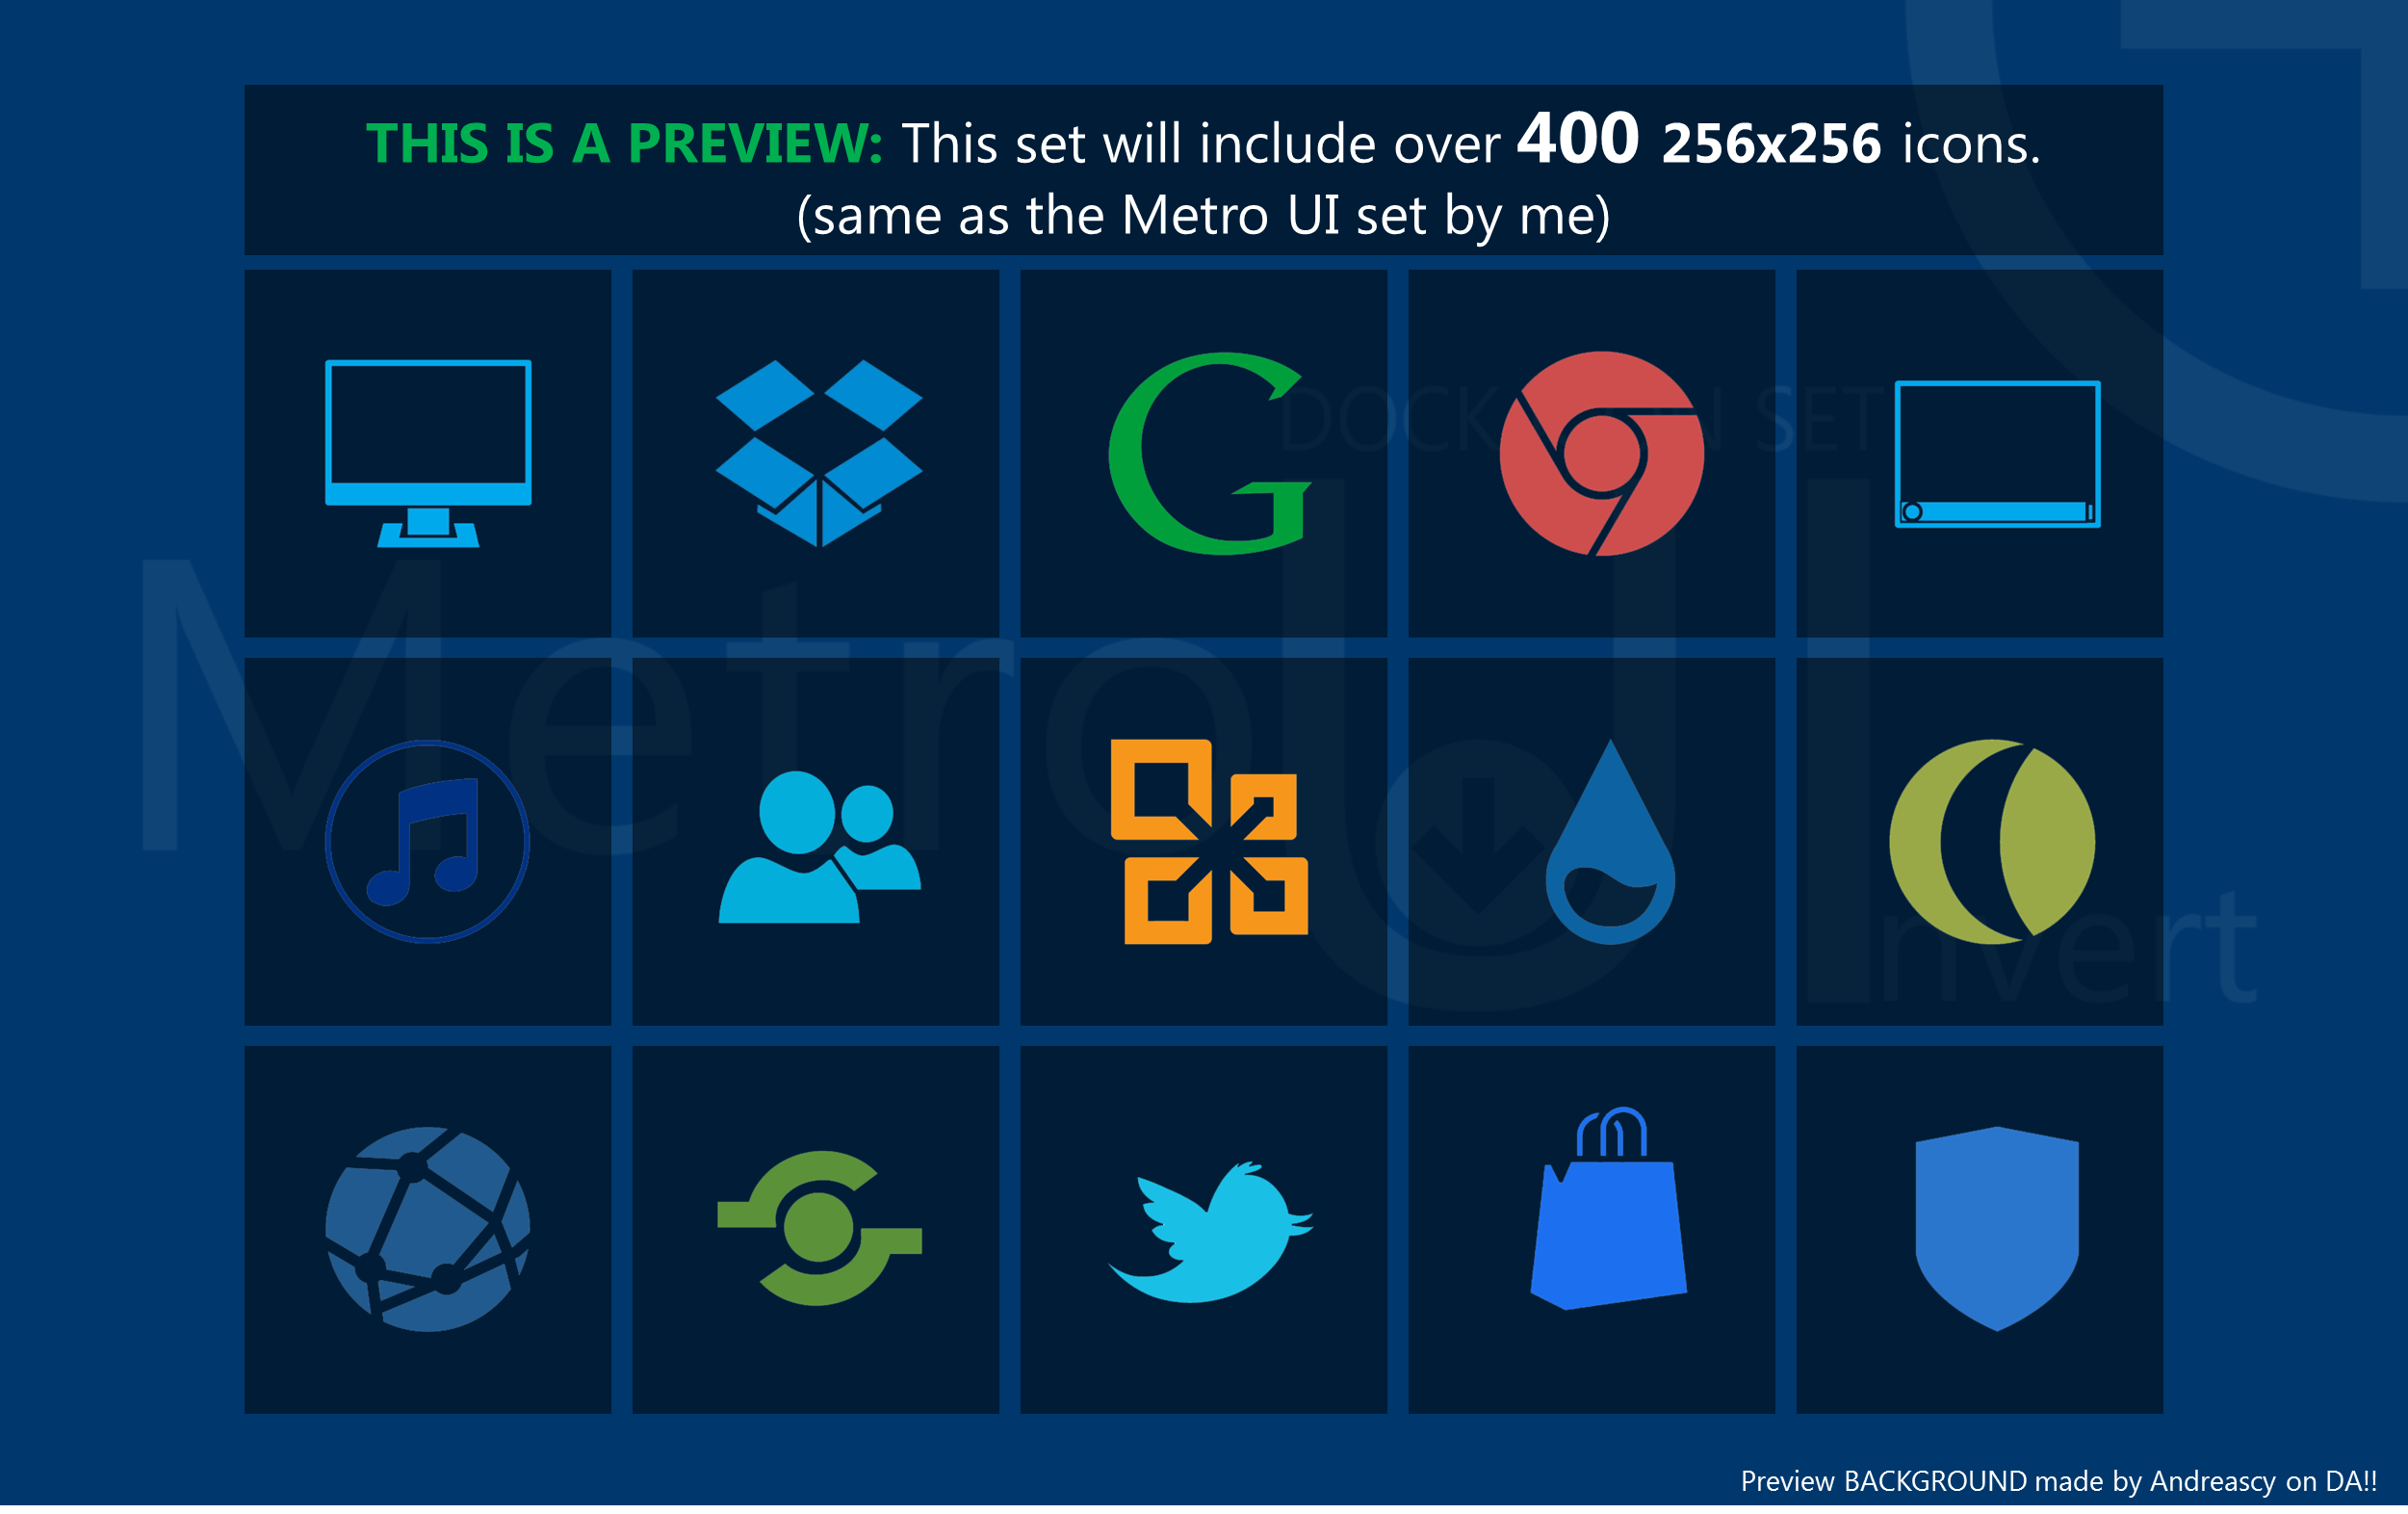 PREVIEW - Metro Uinvert Dock Icon Set COMING SOON